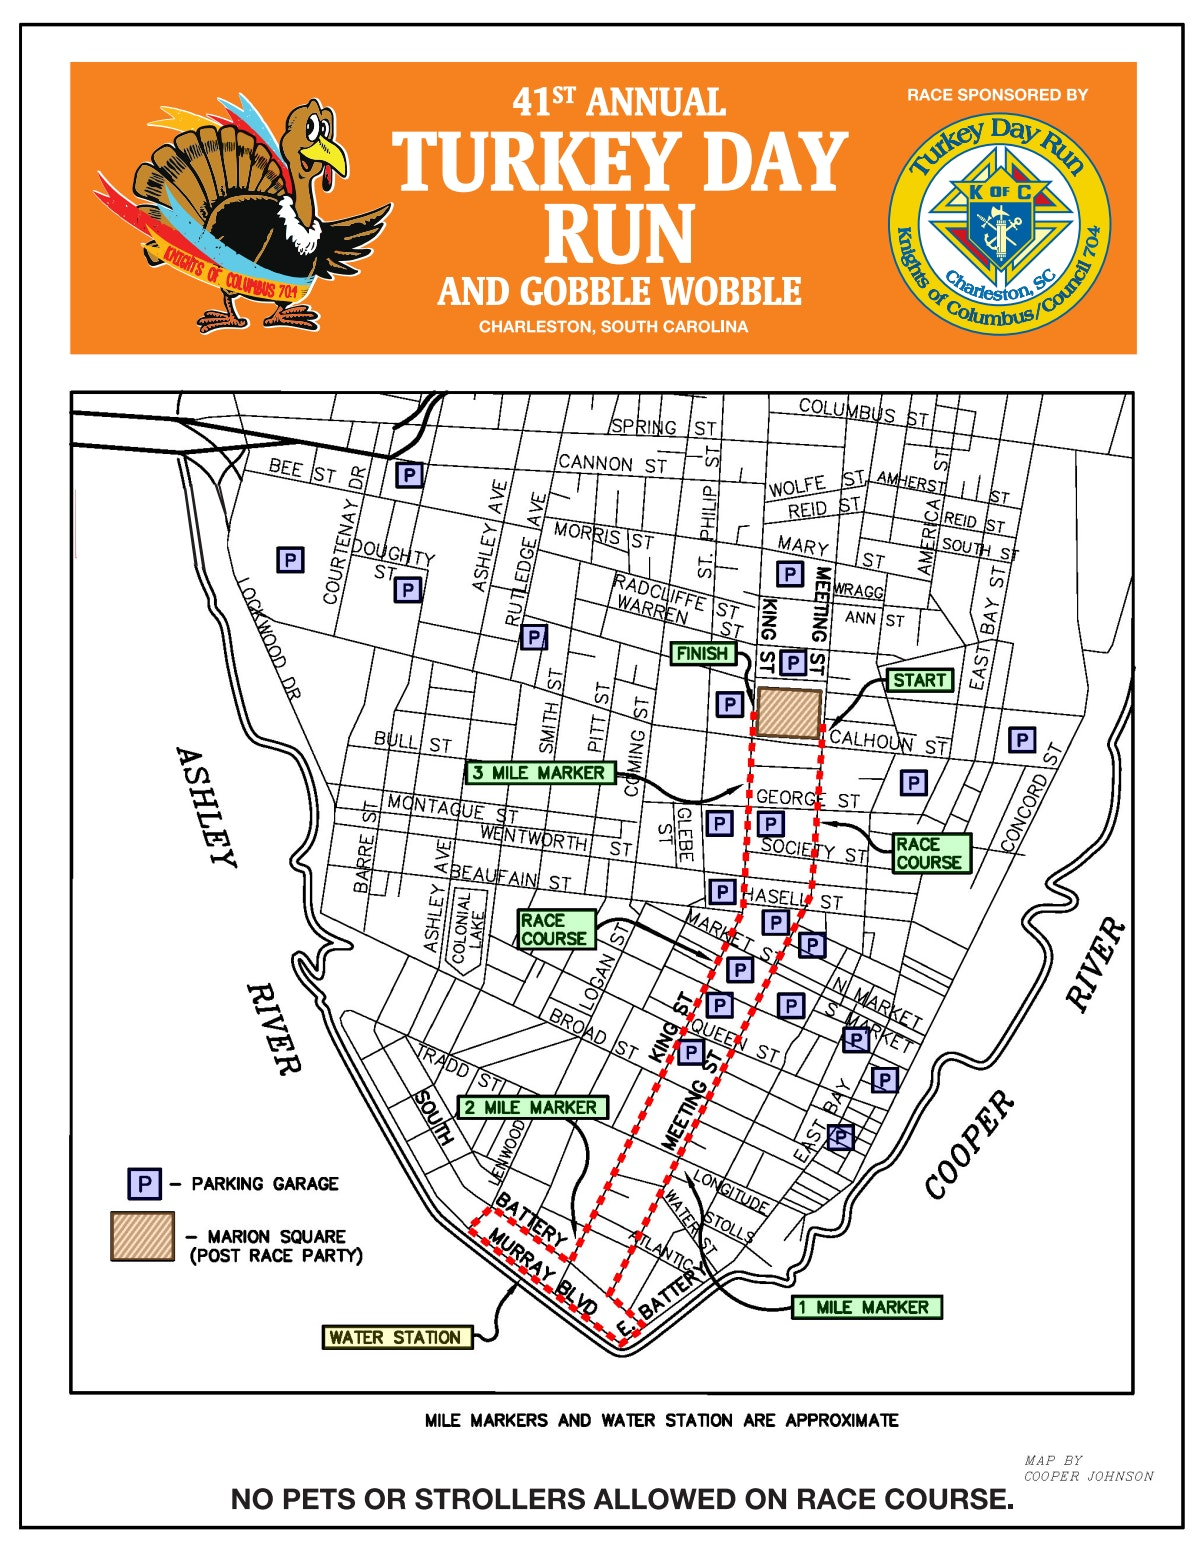 Course map for Turkey Day 5K Course